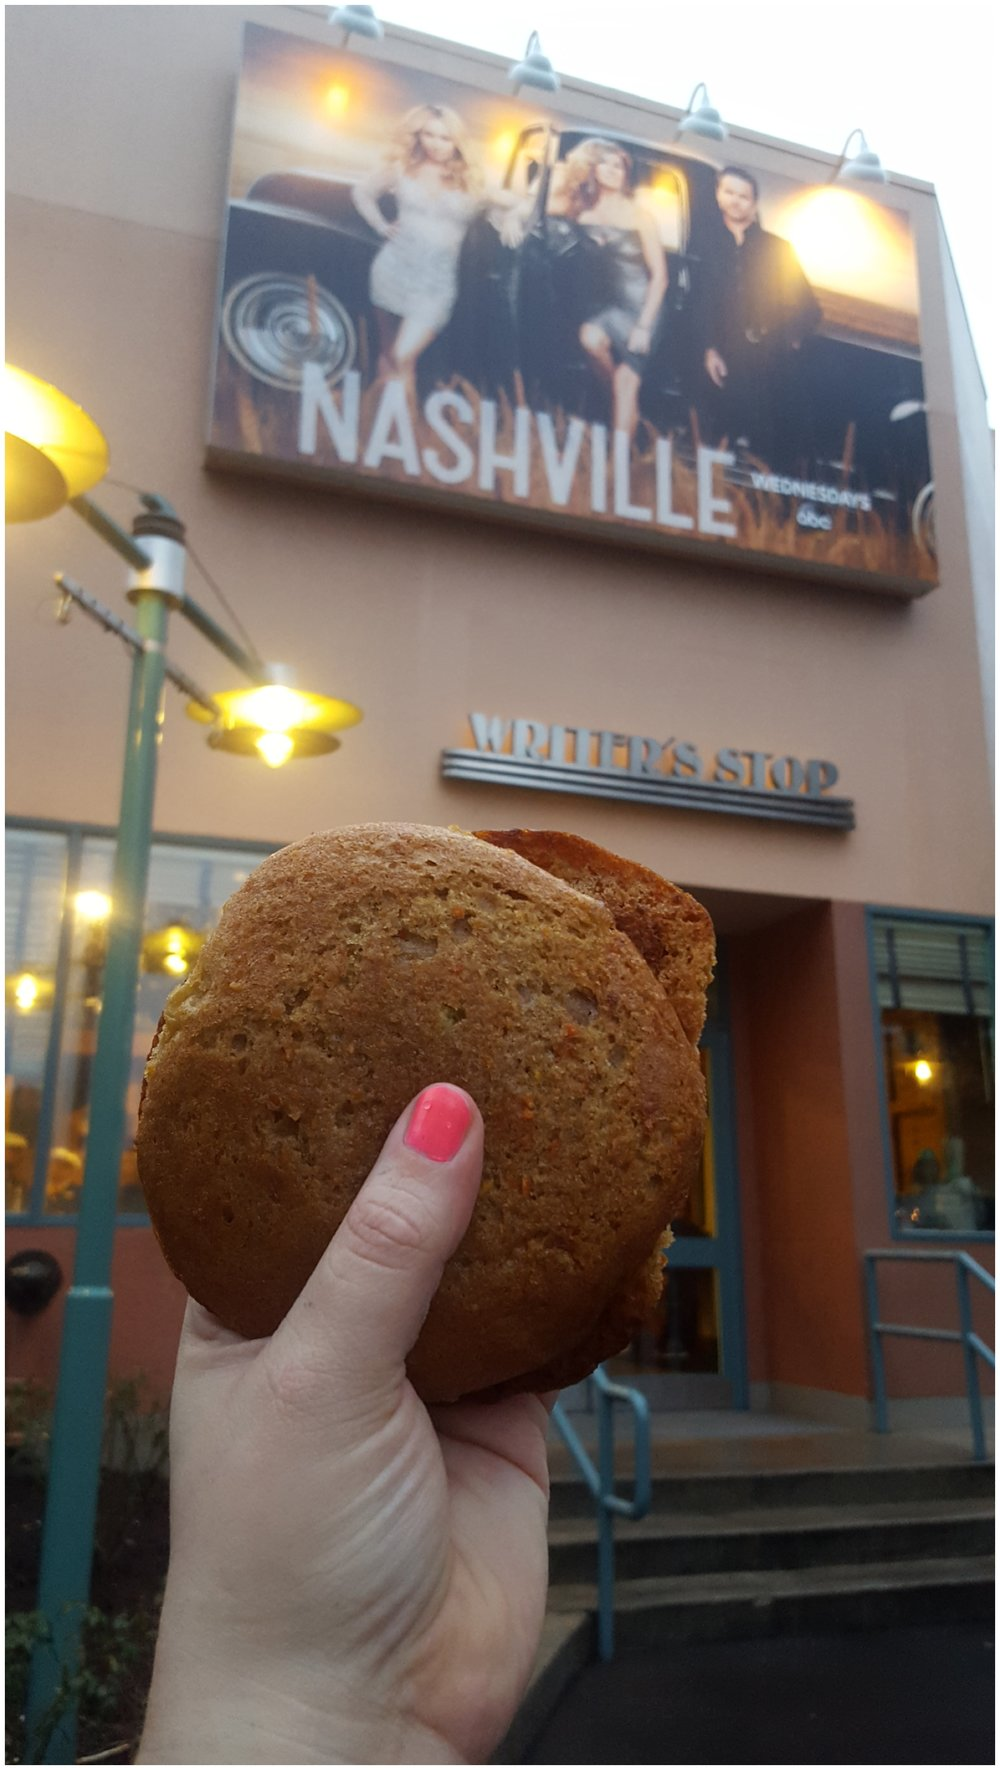 You can't leave Hollywood Studios without sharing a carrot cake cookie from the Writer's Stop!